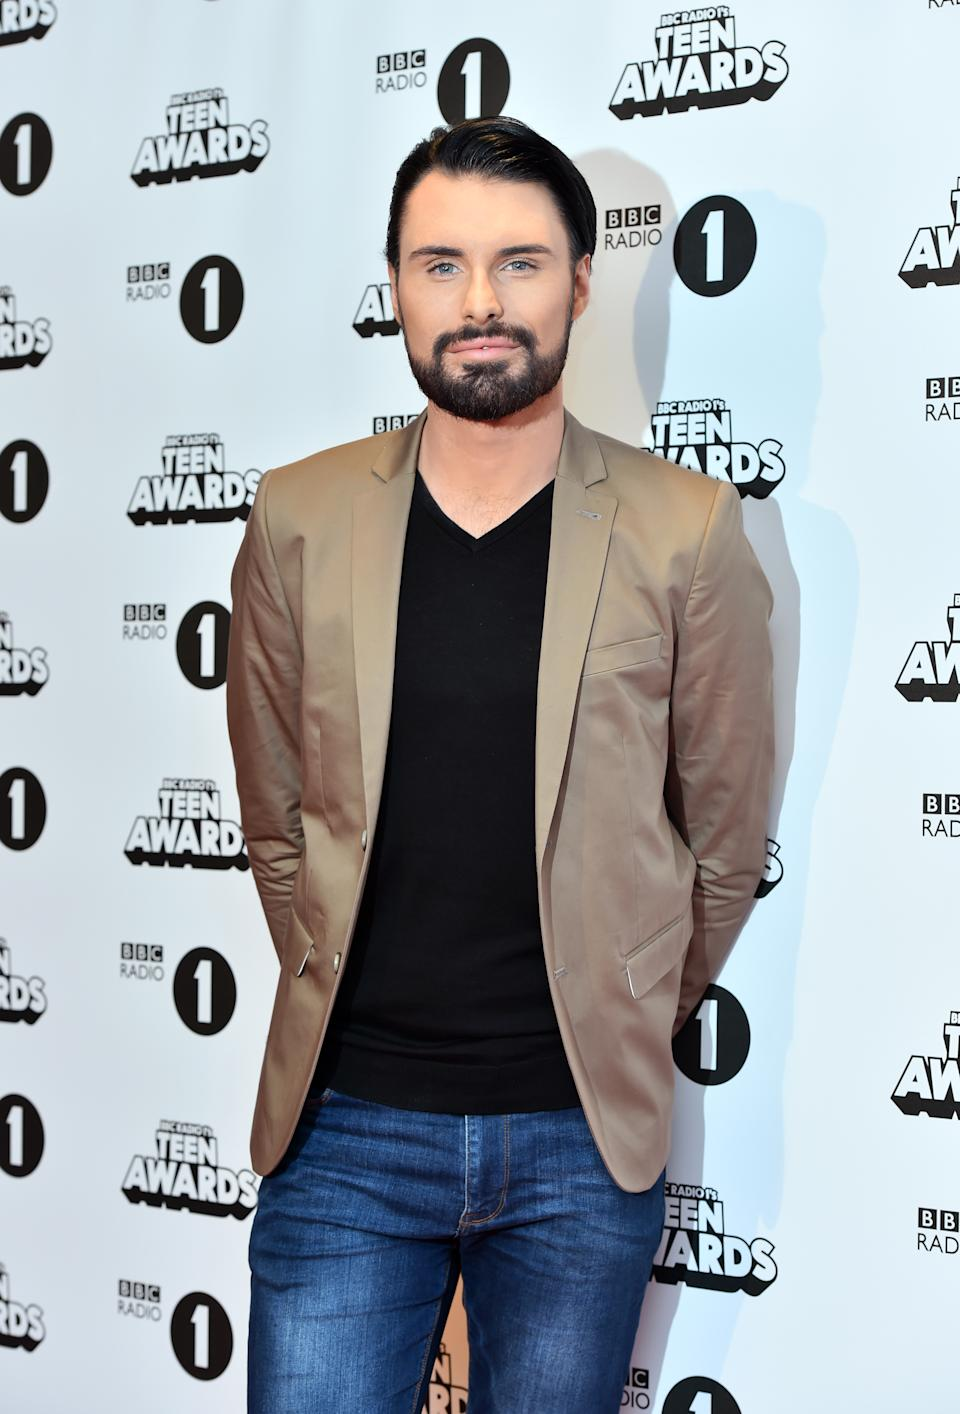 Rylan Clark Neal attending the BBC Radio 1 Teen Awards, held at the SSE Wembley Arena in London. See PA Story SHOWBIZ Teen.